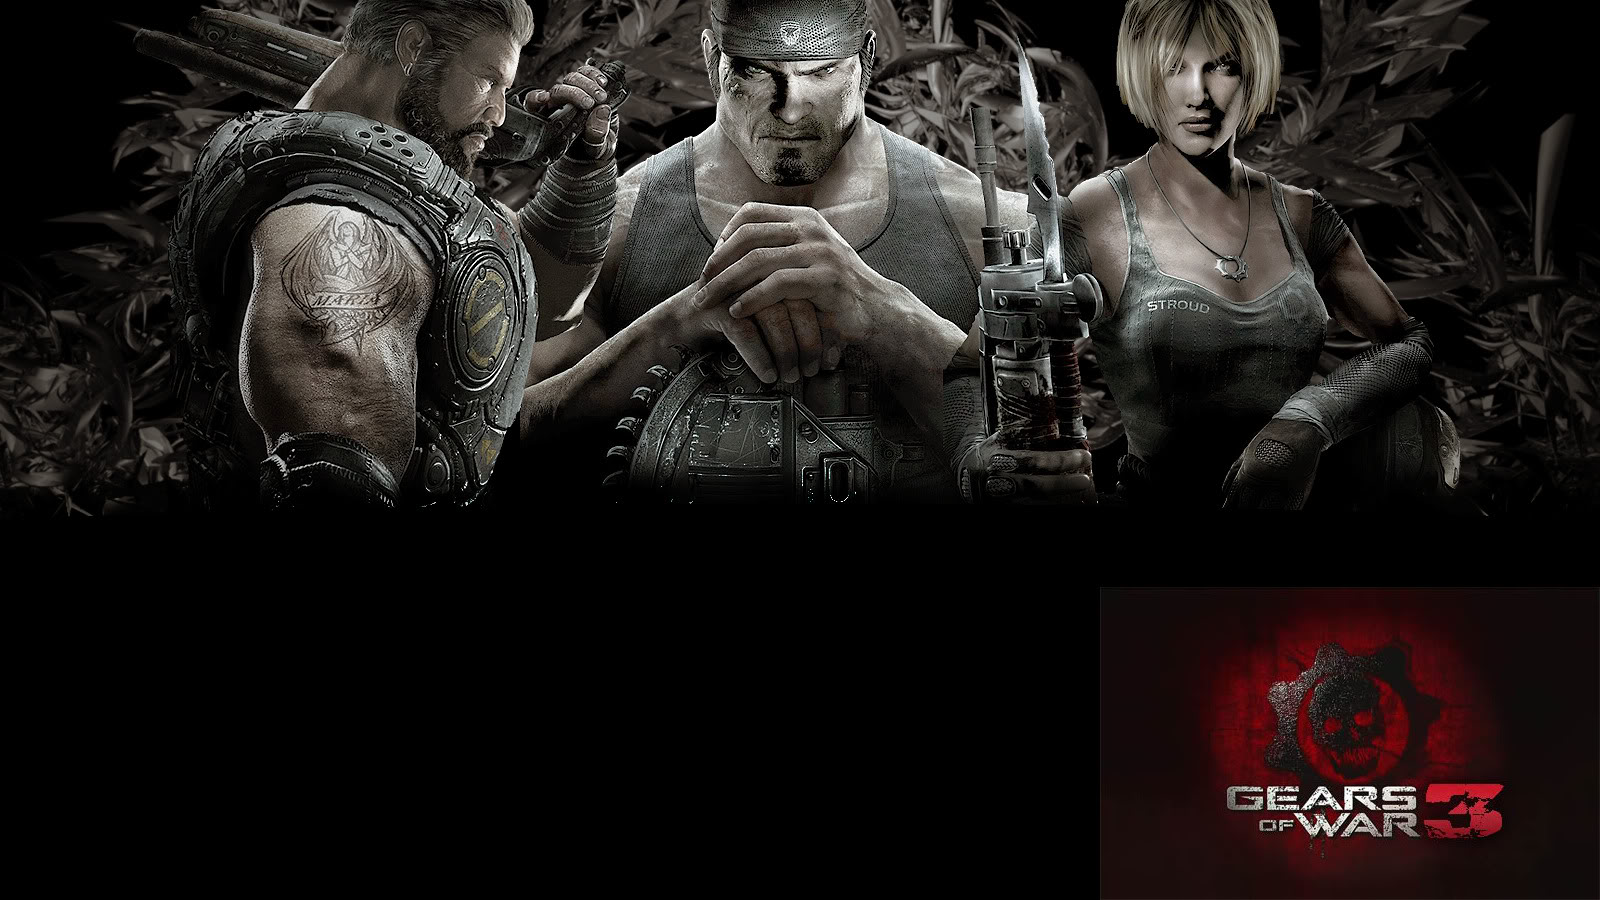 Gears of war 3 wallpapers free download - gears of war 3 xbox game wallpapers